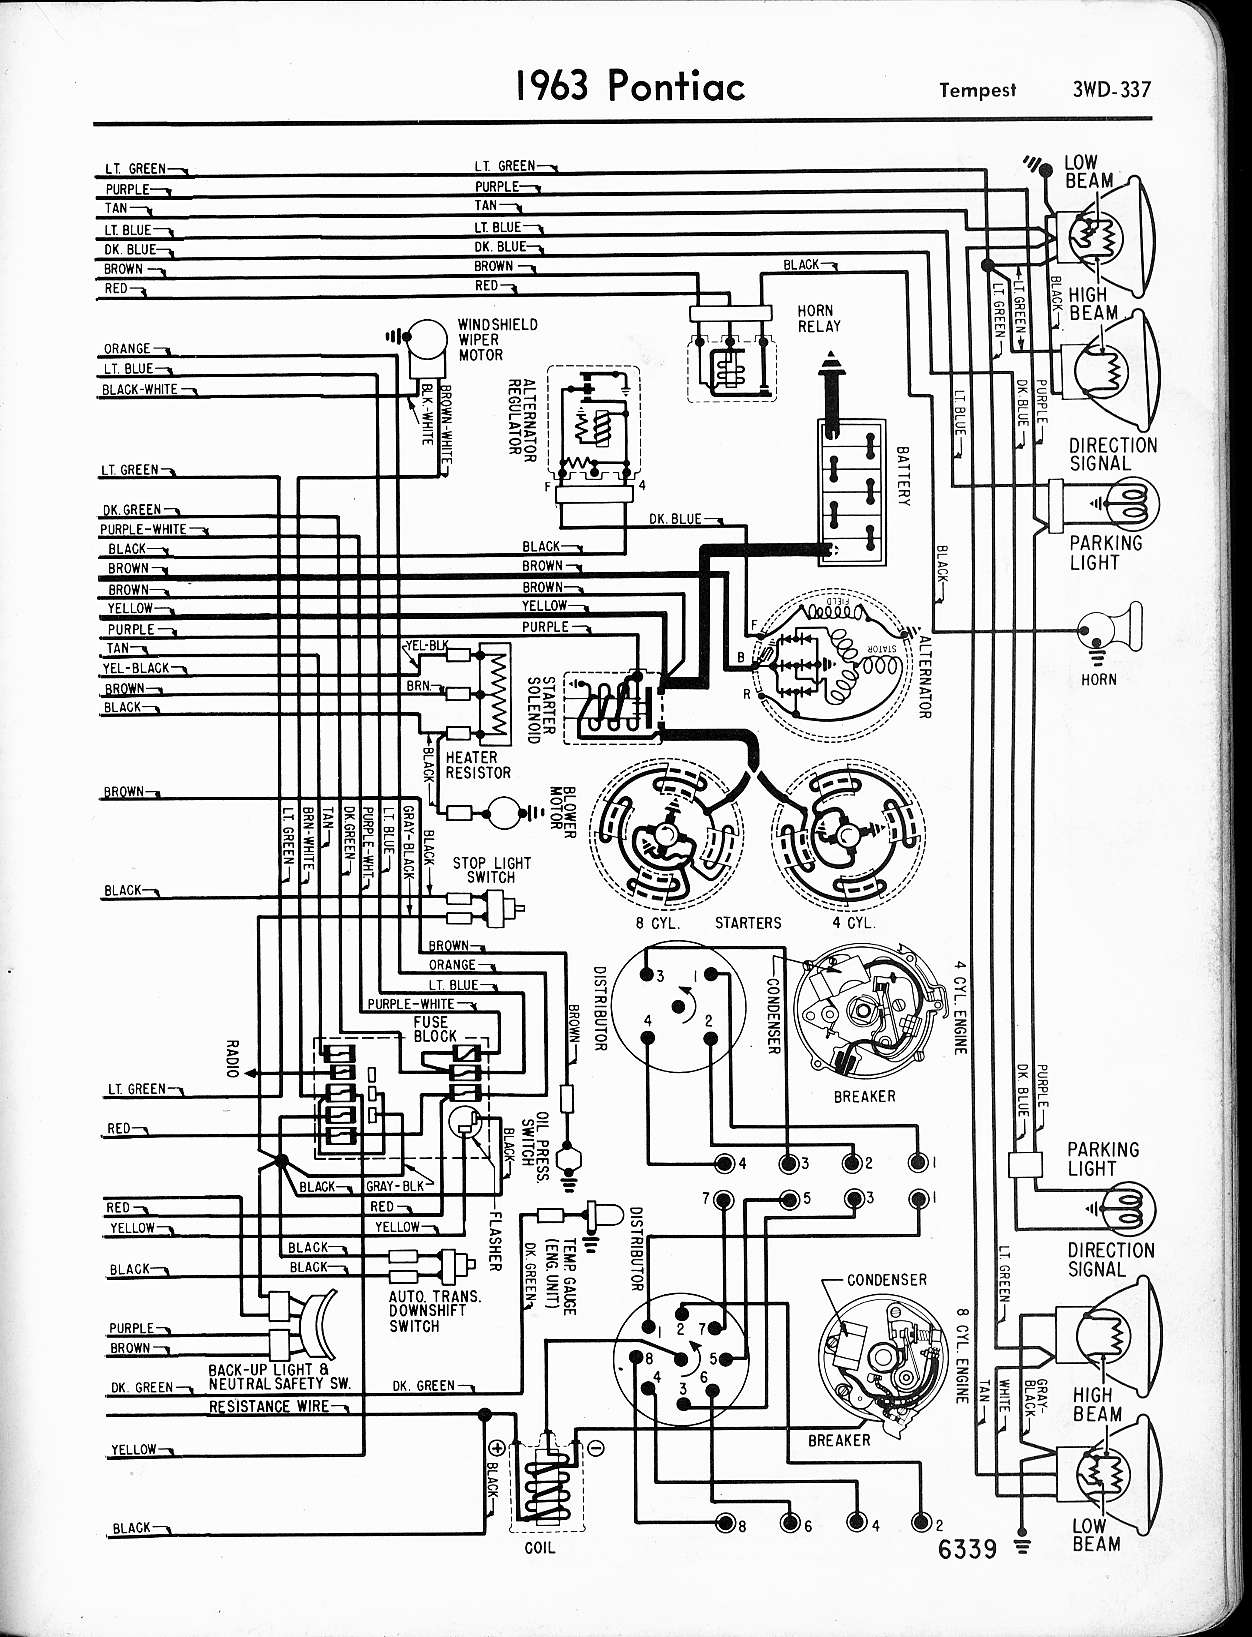 1964 gto fuse box wiring diagram g9 1964 Plymouth Sport Fury 1965 gto fuse box wiring diagram data 1964 gto convertible 1964 gto fuse box